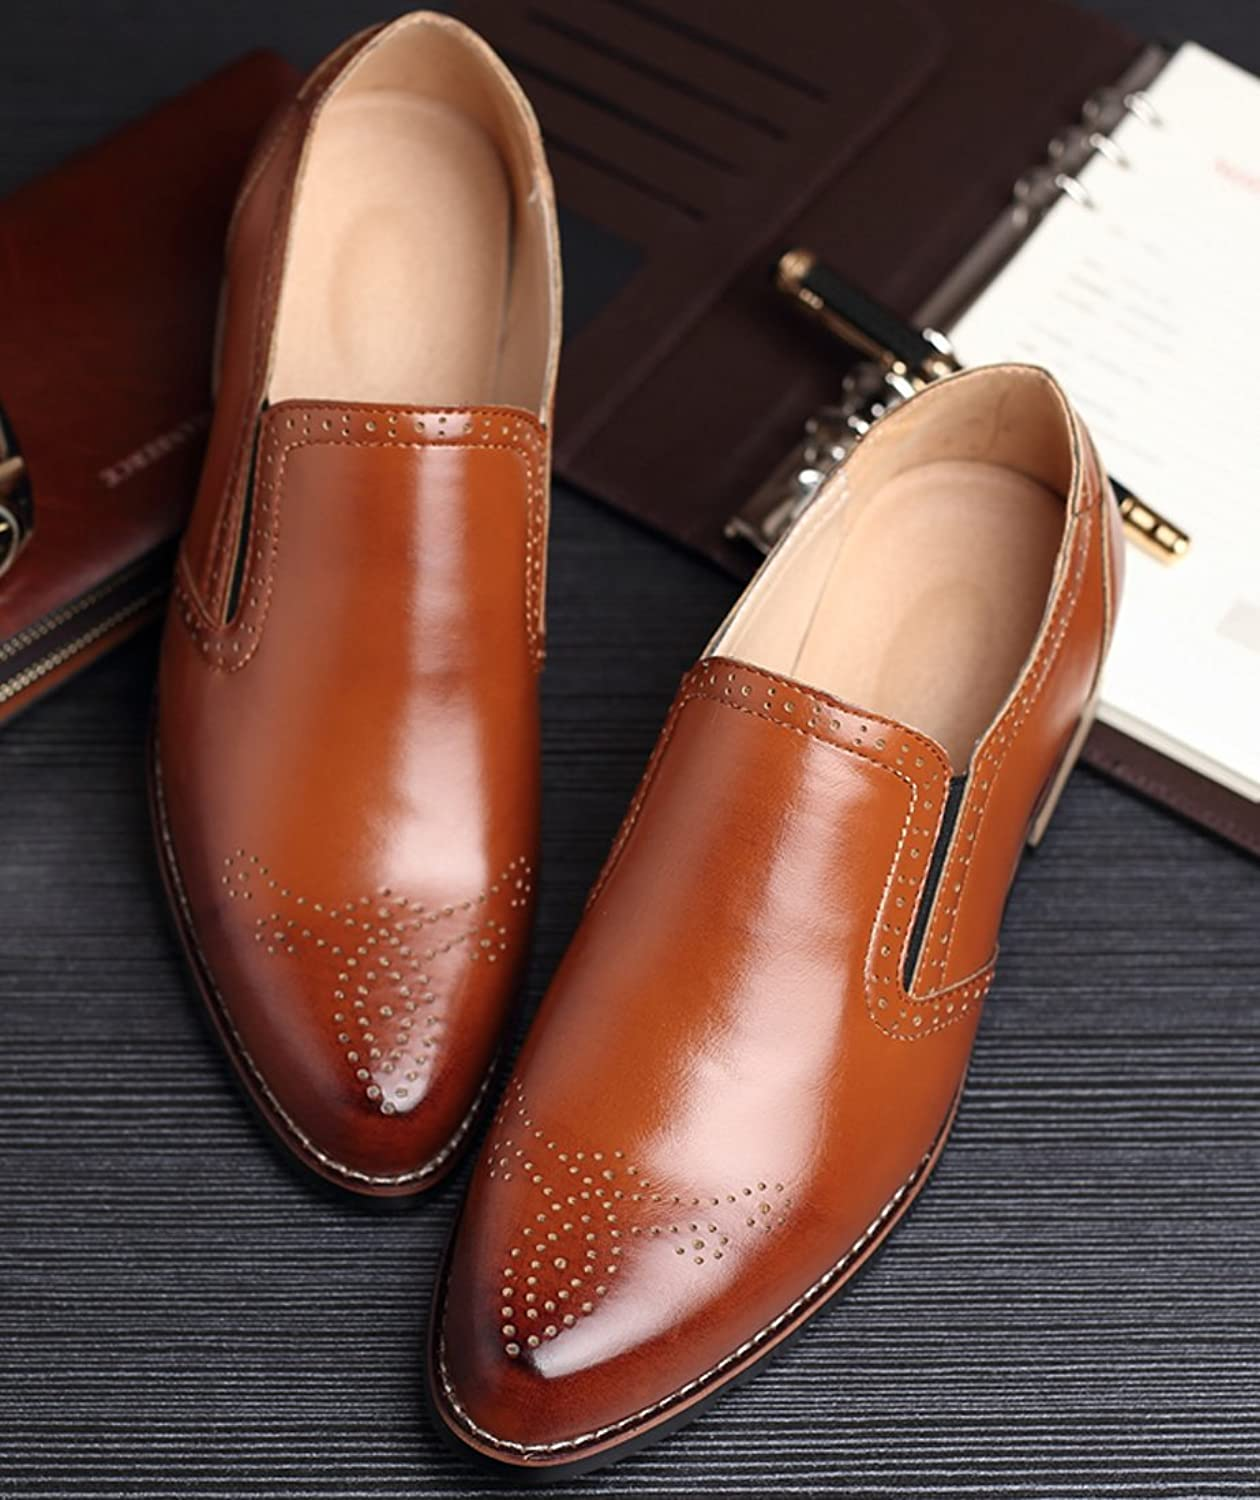 Dress Shoes Loafers Mens Retro Brogue Wing Tips Slip on Formal Oxford by Santimon  Tan: Amazon.ca: Shoes & Handbags